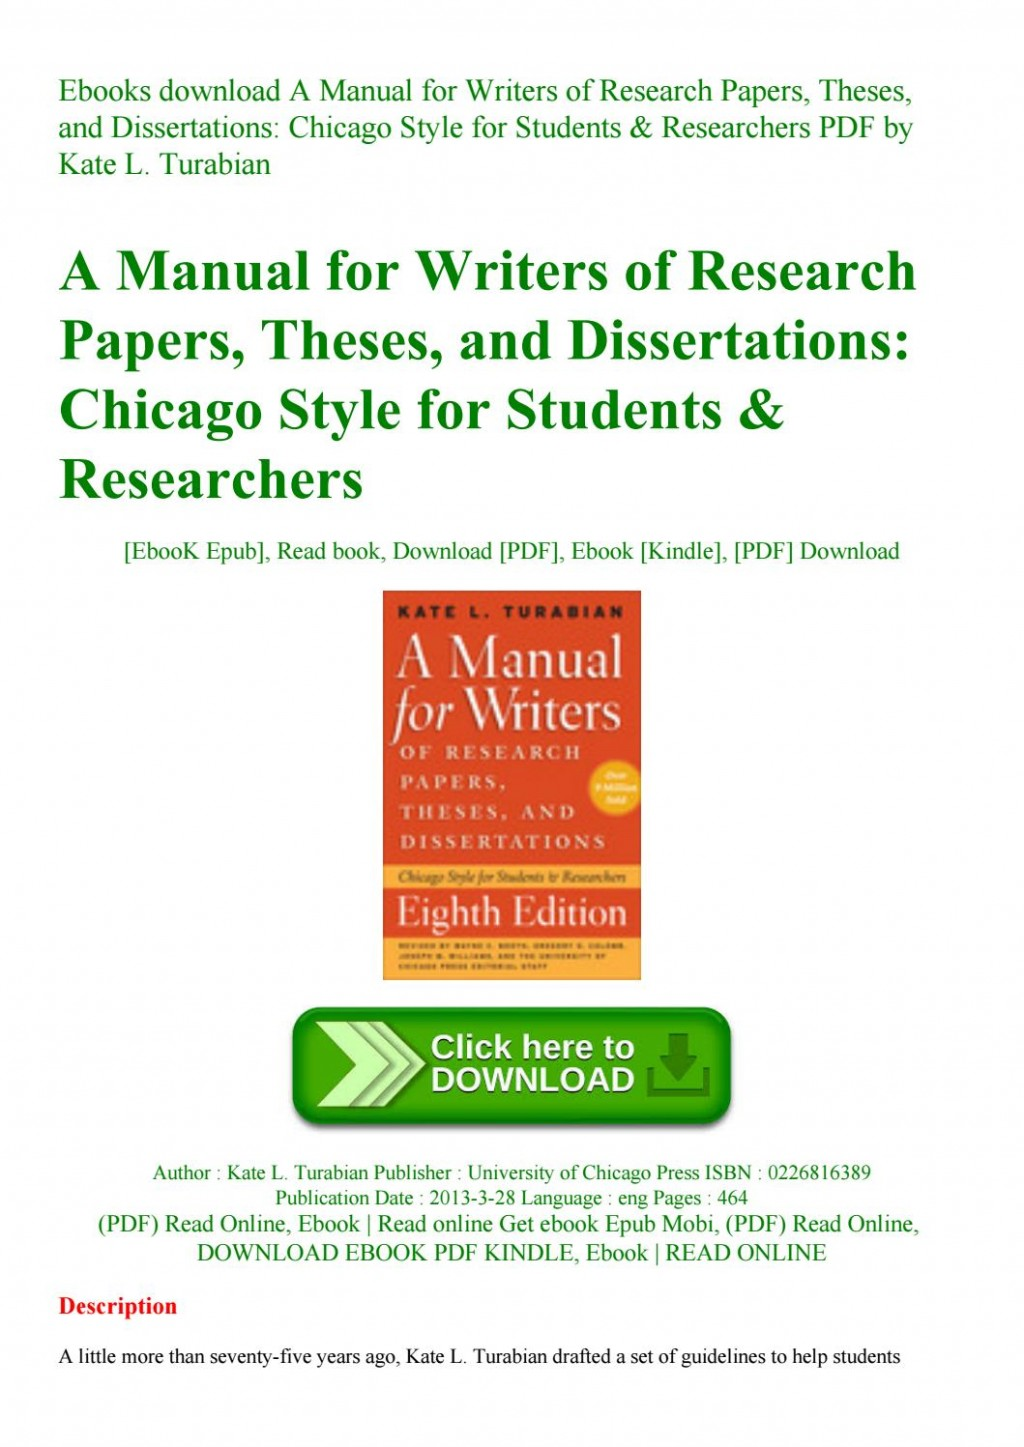 003 Research Paper Manual For Writers Of Papers Theses And Dissertations Download Page 1 Rare A Pdf Large